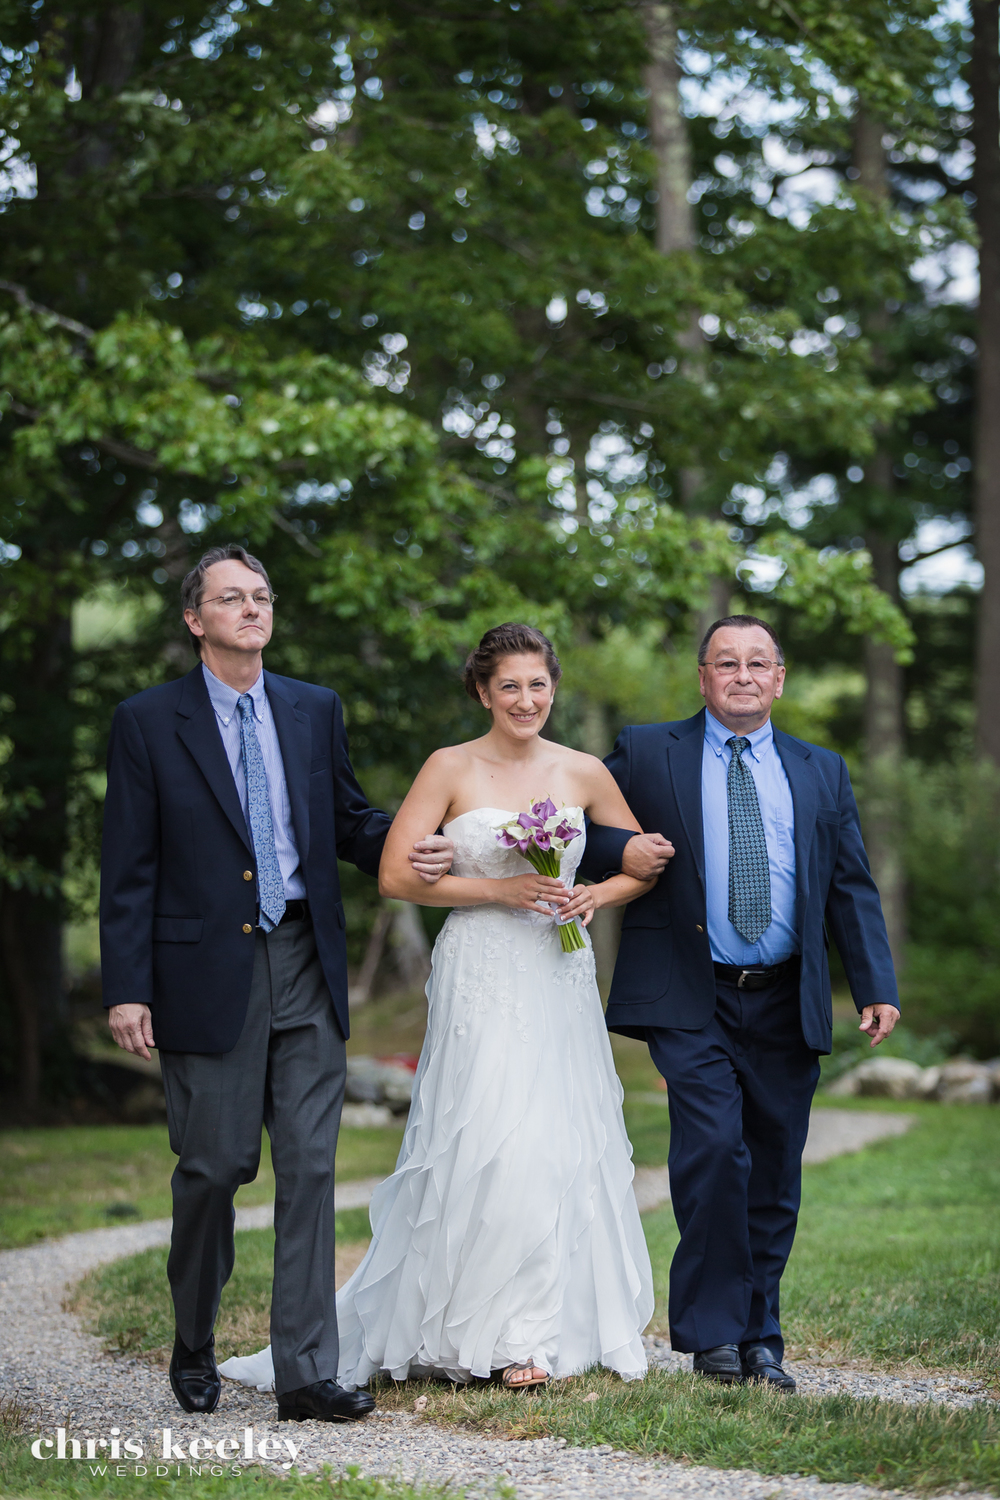 1052-3-Chris-Keeley-Weddings-315 wmk.jpg